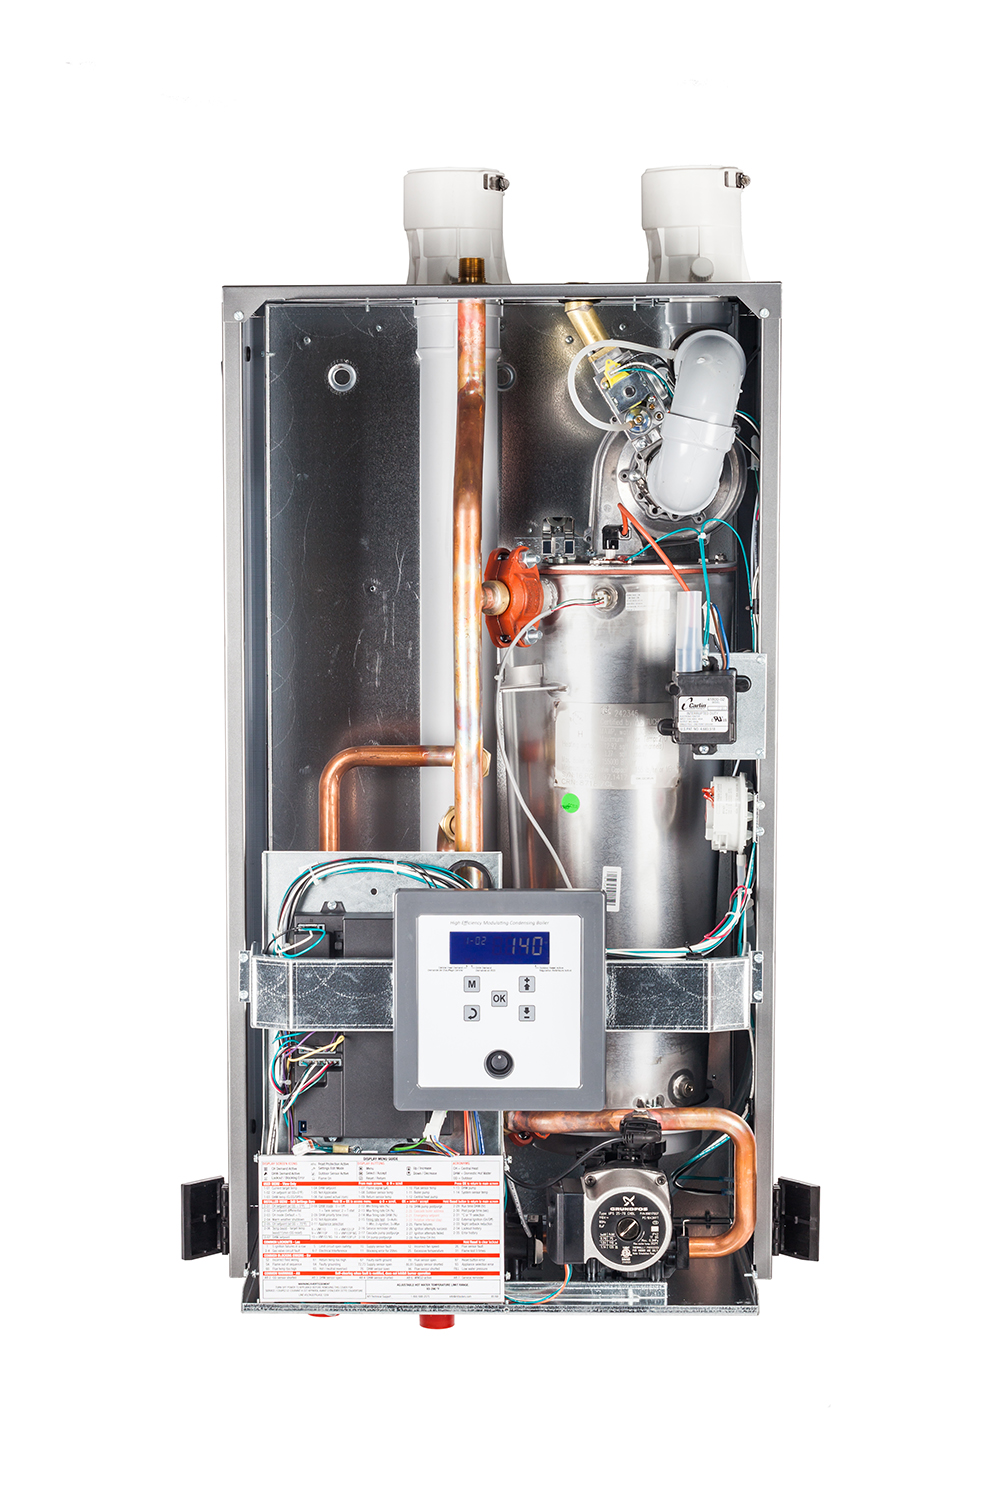 NTI Vmax Series Boiler with front cover open